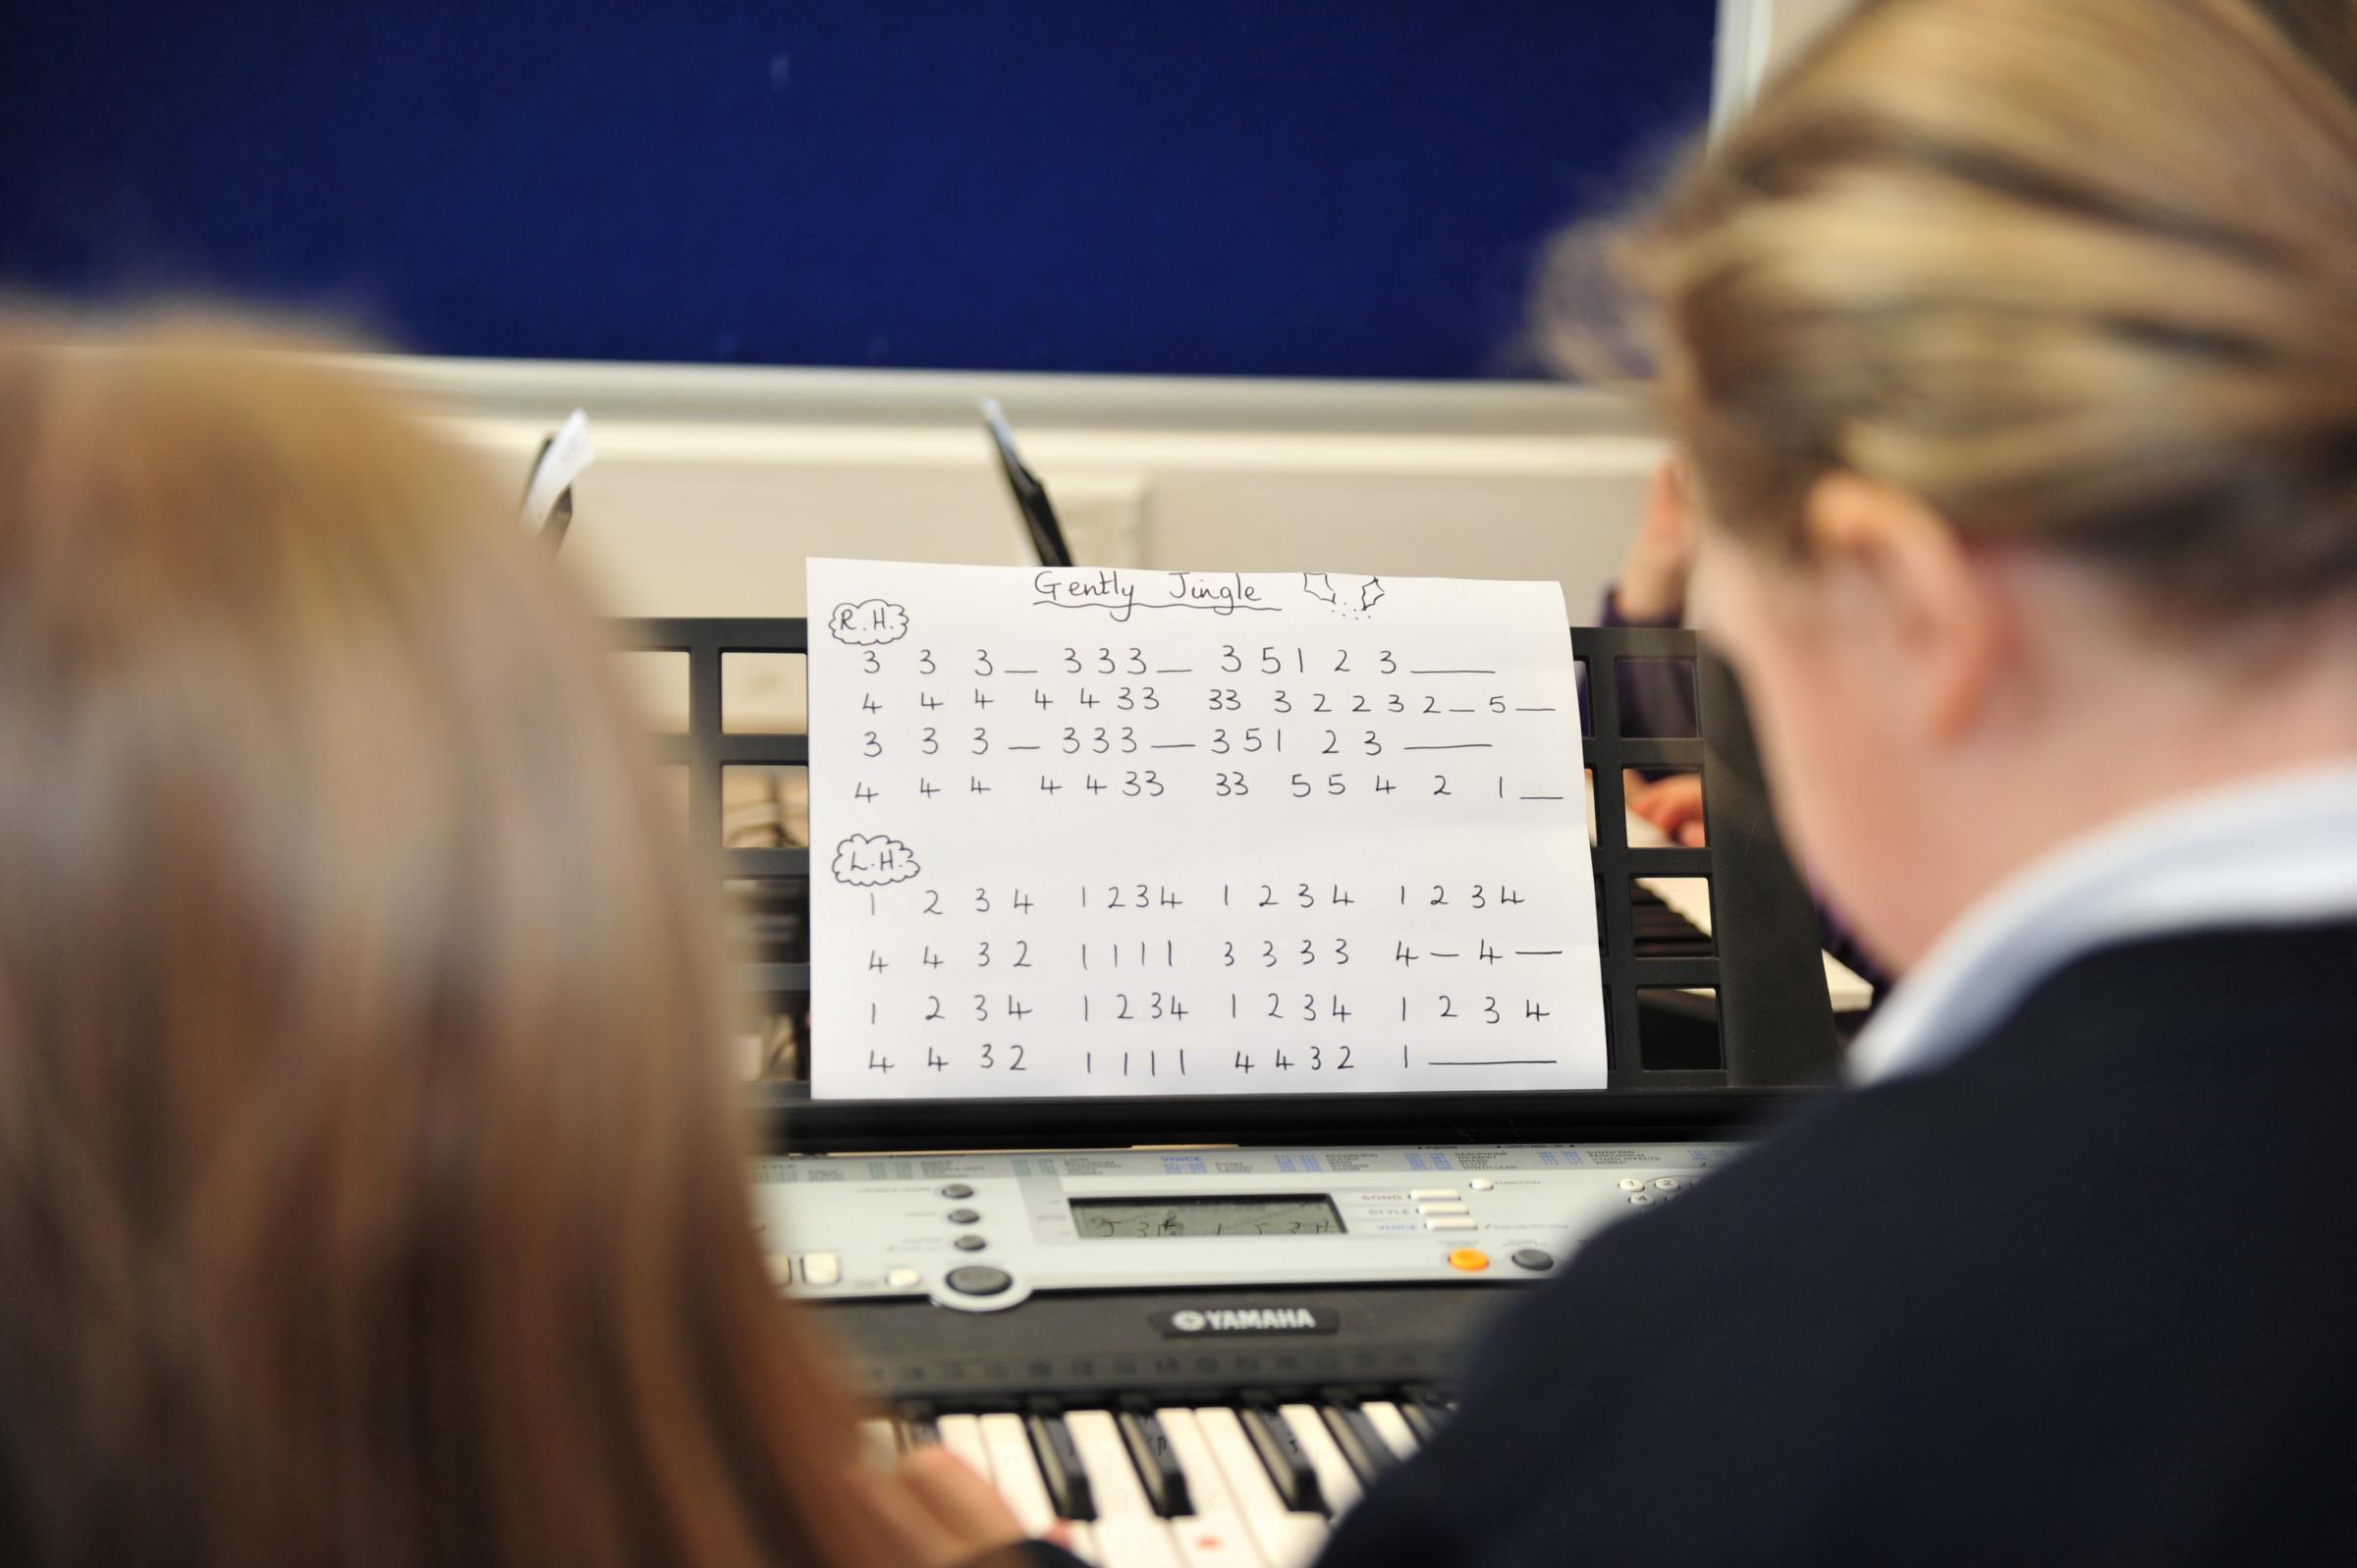 Inquiry heard how charges risk creating barriers for children wanting to play a musical instrument (Photo: PA)